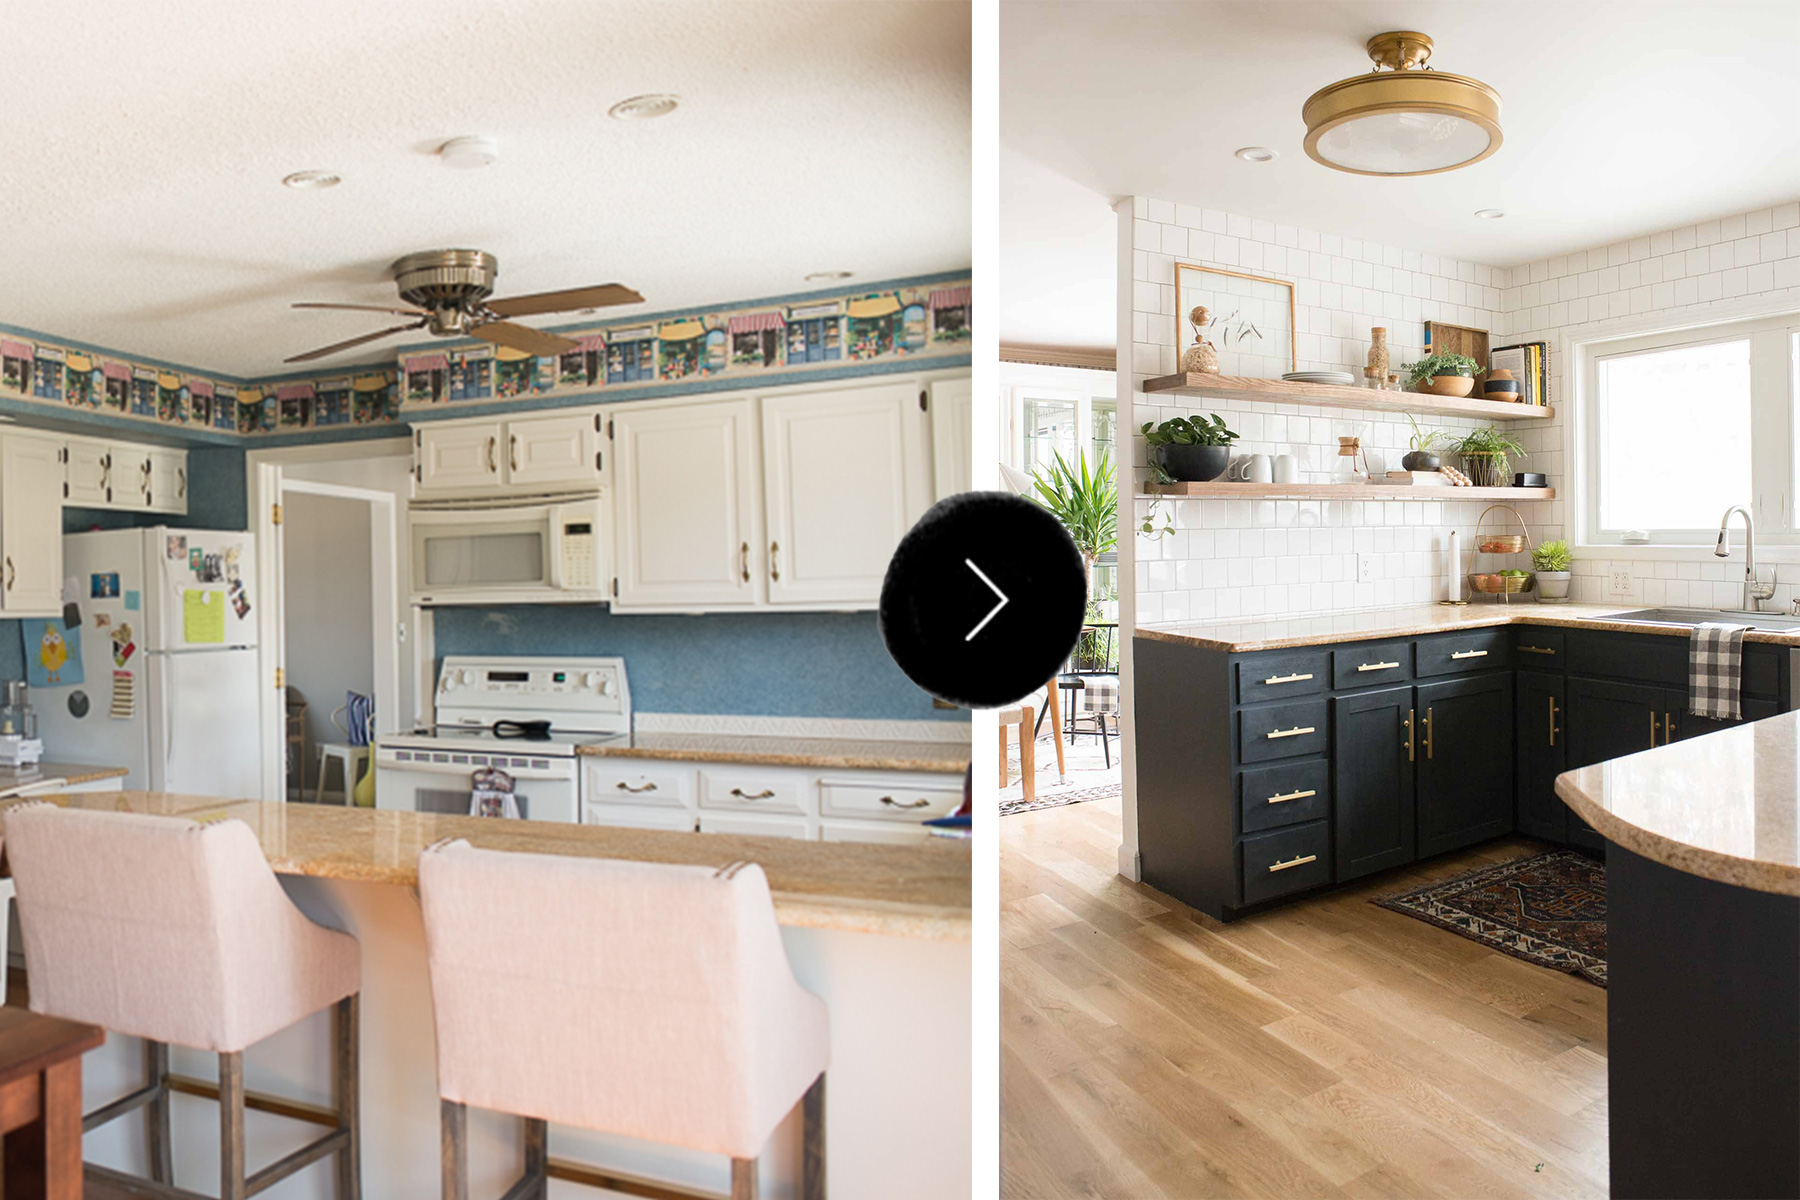 Before & After A Budget Conscious Kitchen And Dining Room Makeover